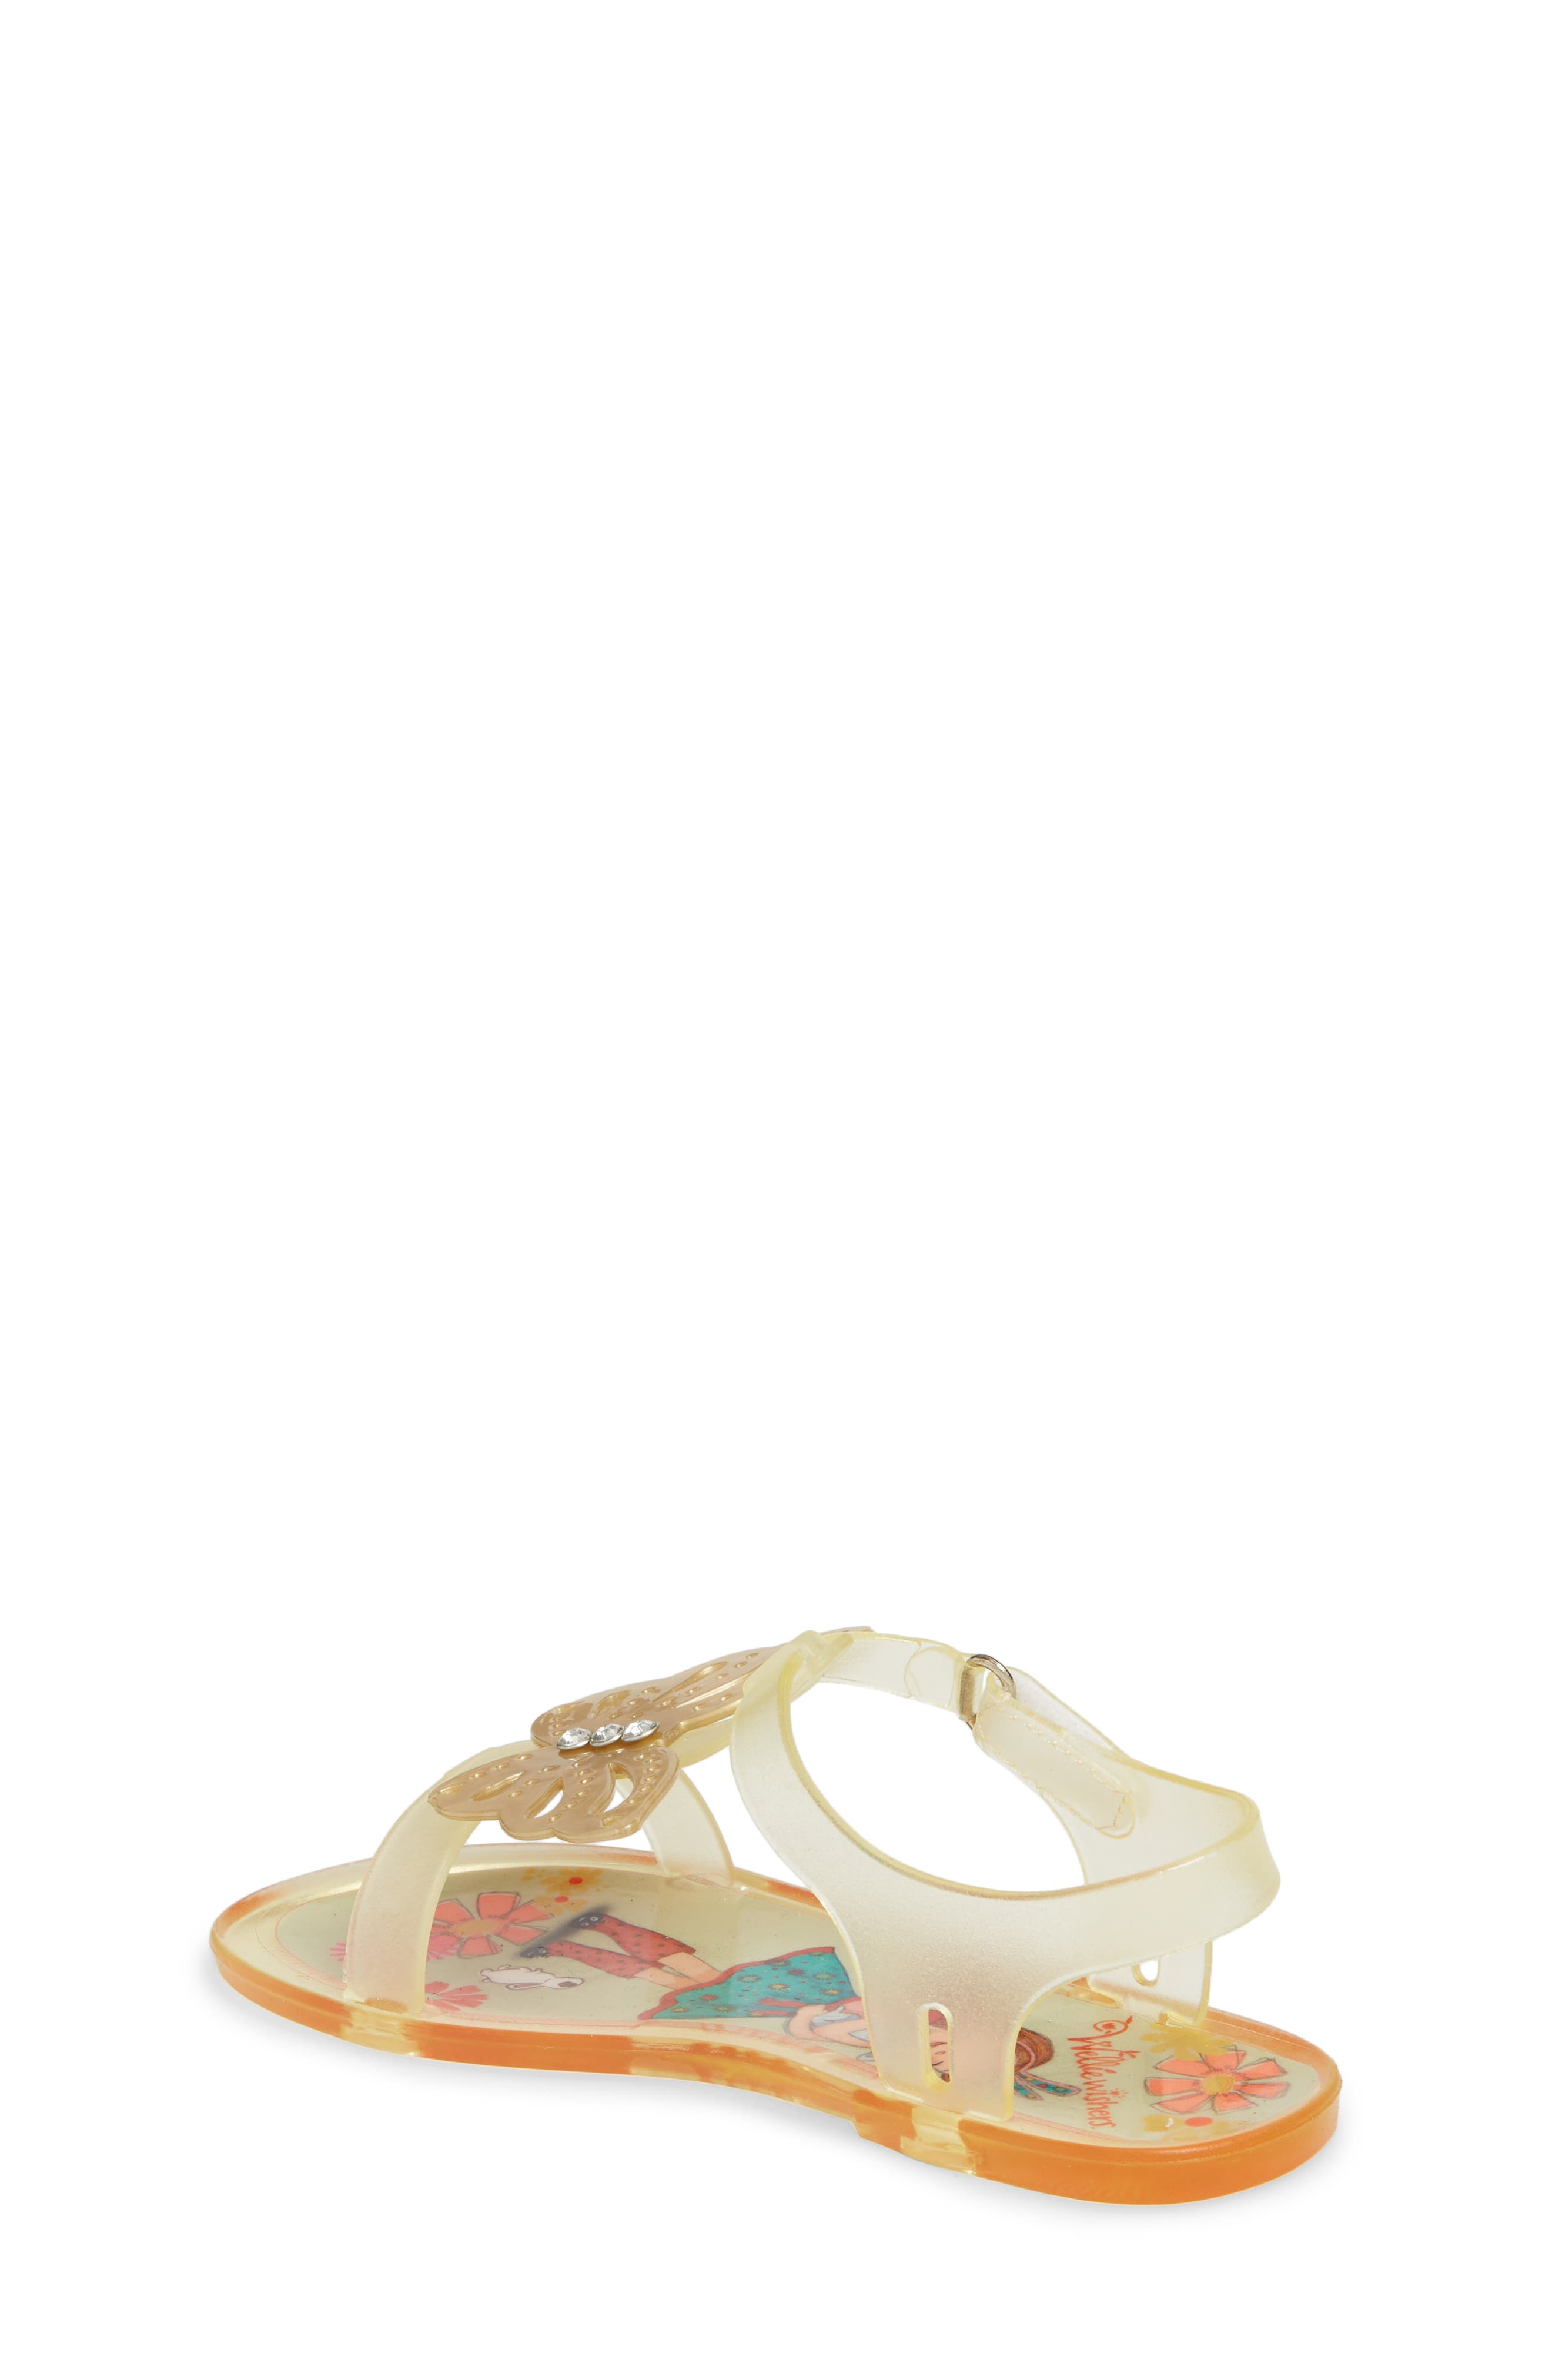 Willa Butterfly Jelly Sandal,                             Alternate thumbnail 2, color,                             710